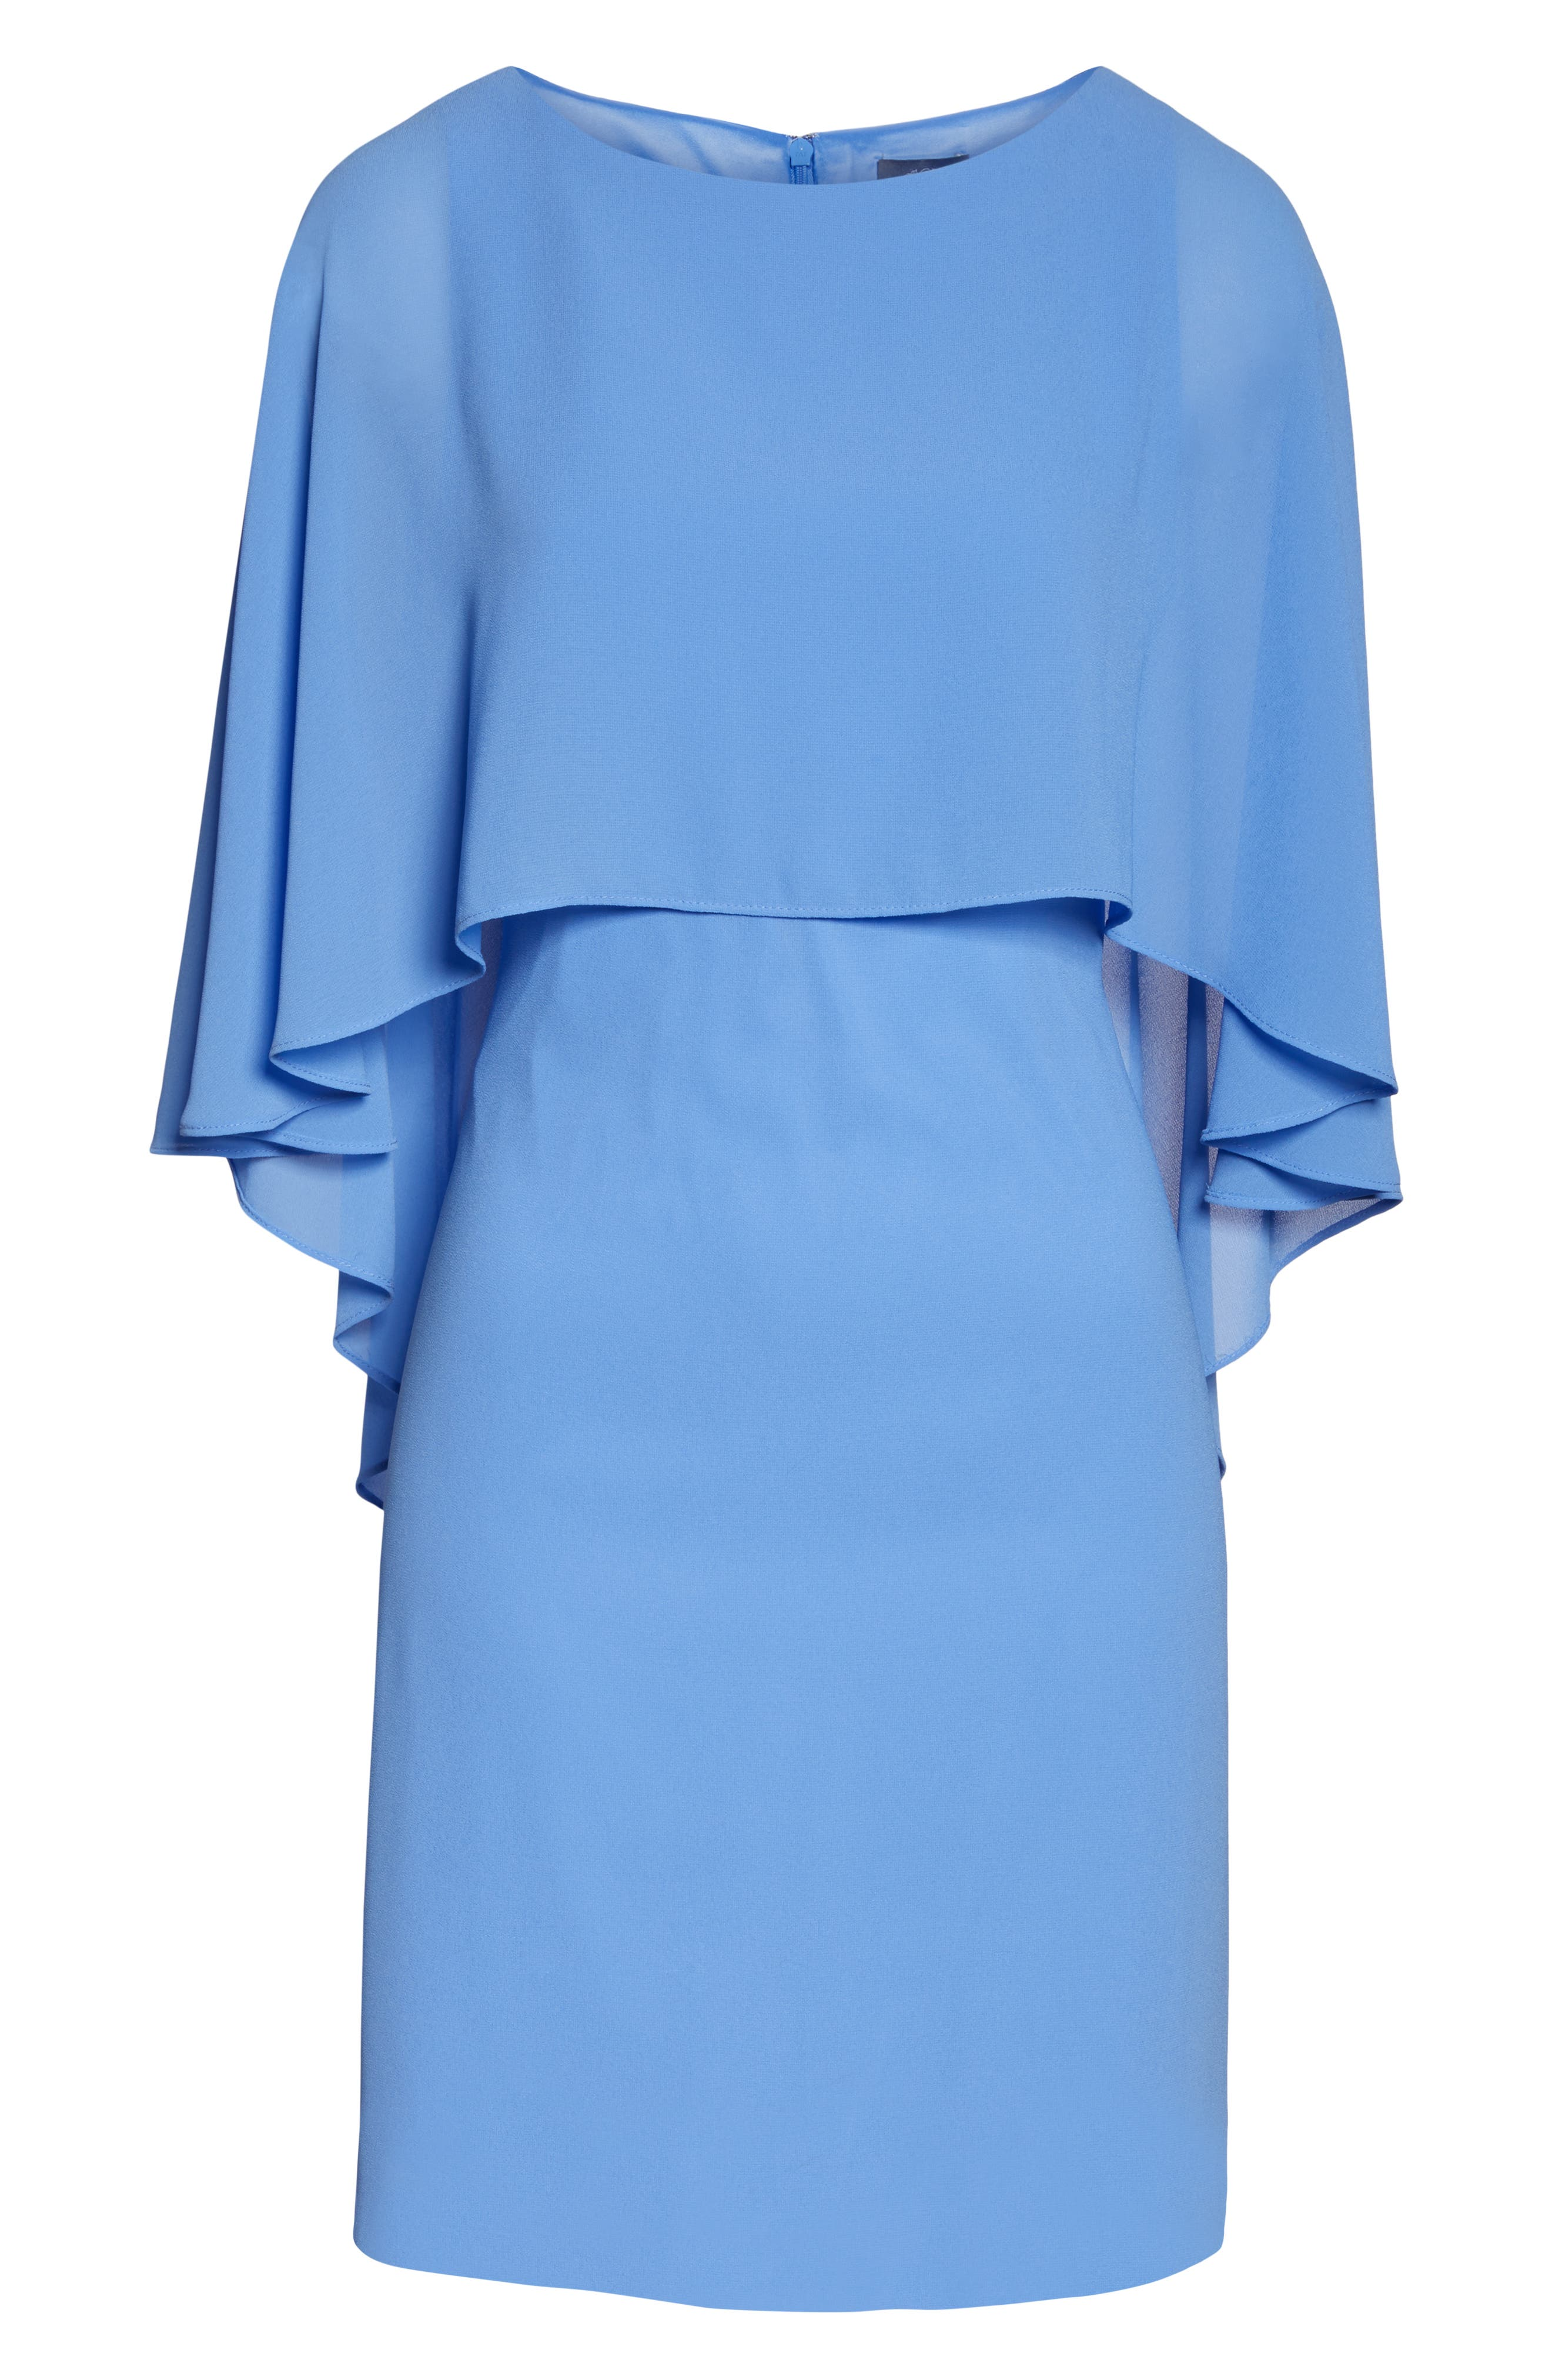 VINCE CAMUTO, Cape Overlay Dress, Alternate thumbnail 7, color, PERIWINKLE